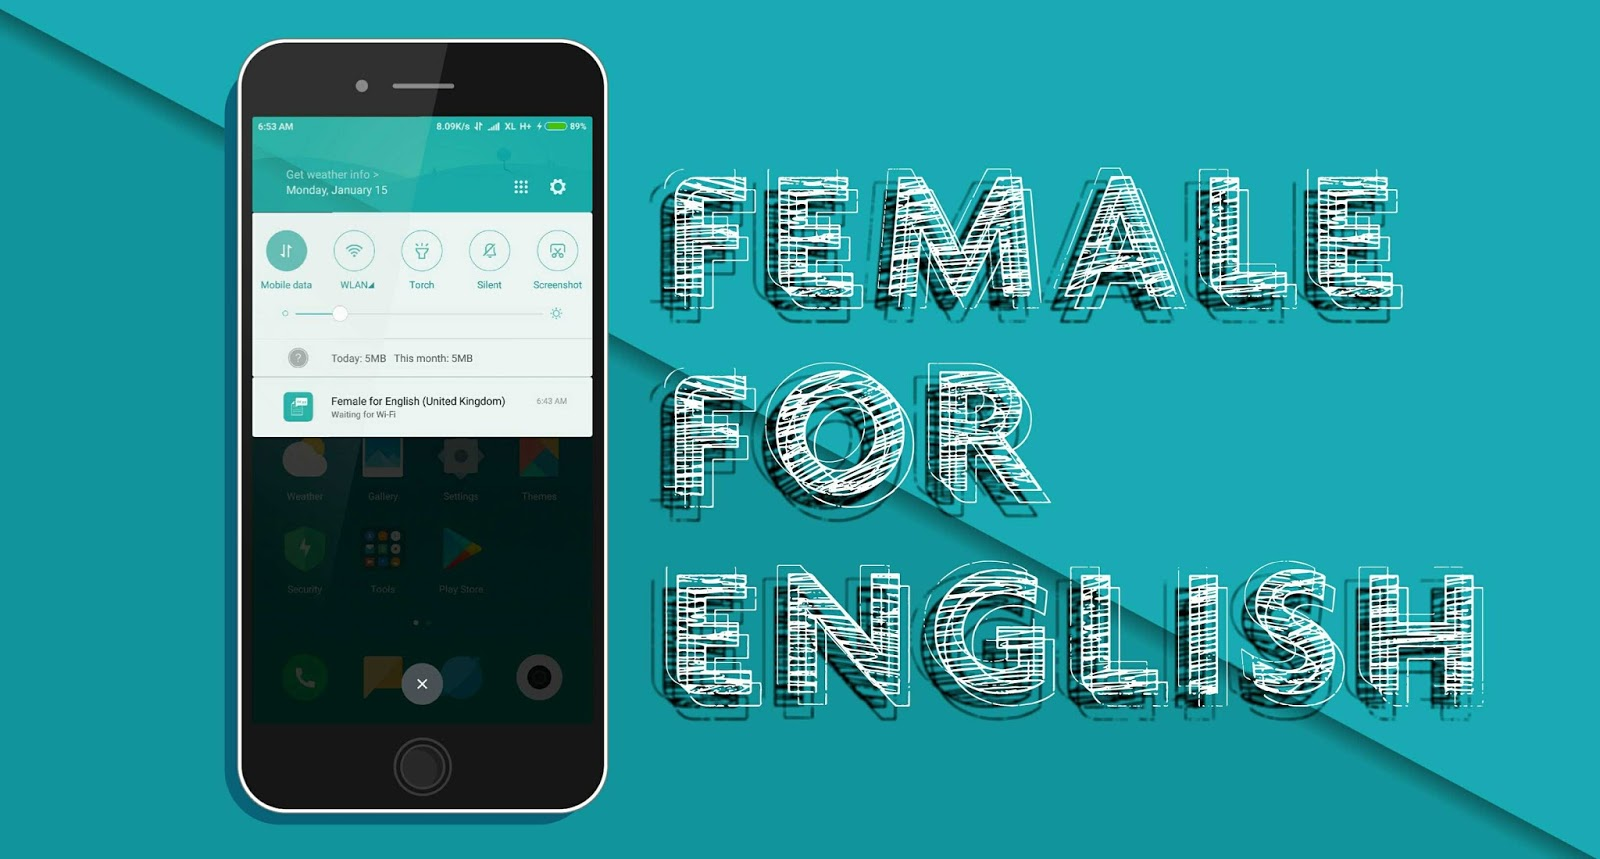 Mengatasi Female For English